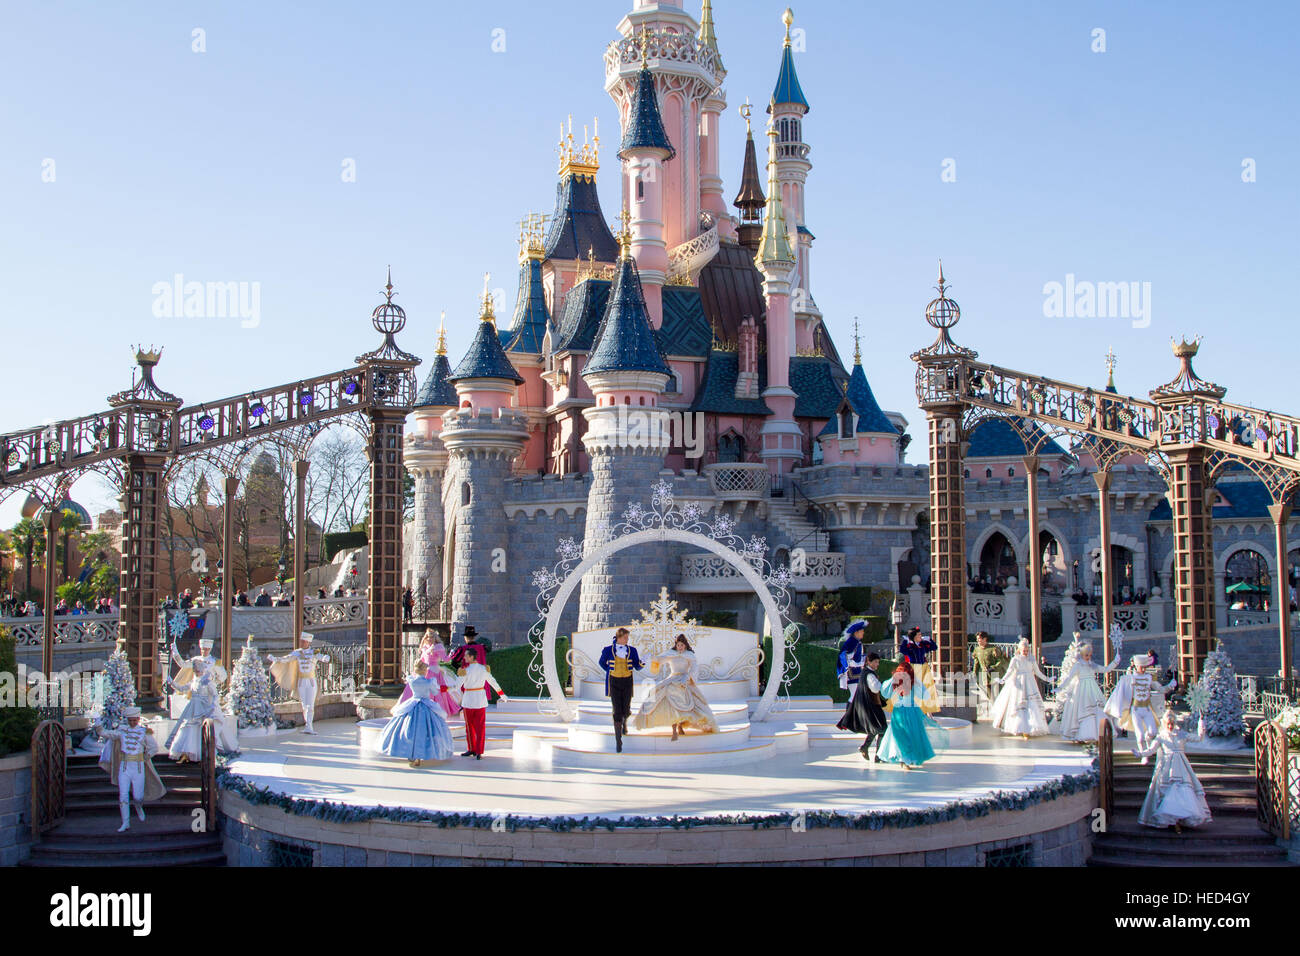 Royal Christmas wishes at Disneyland Paris Marne La Vallee France Stock Photo